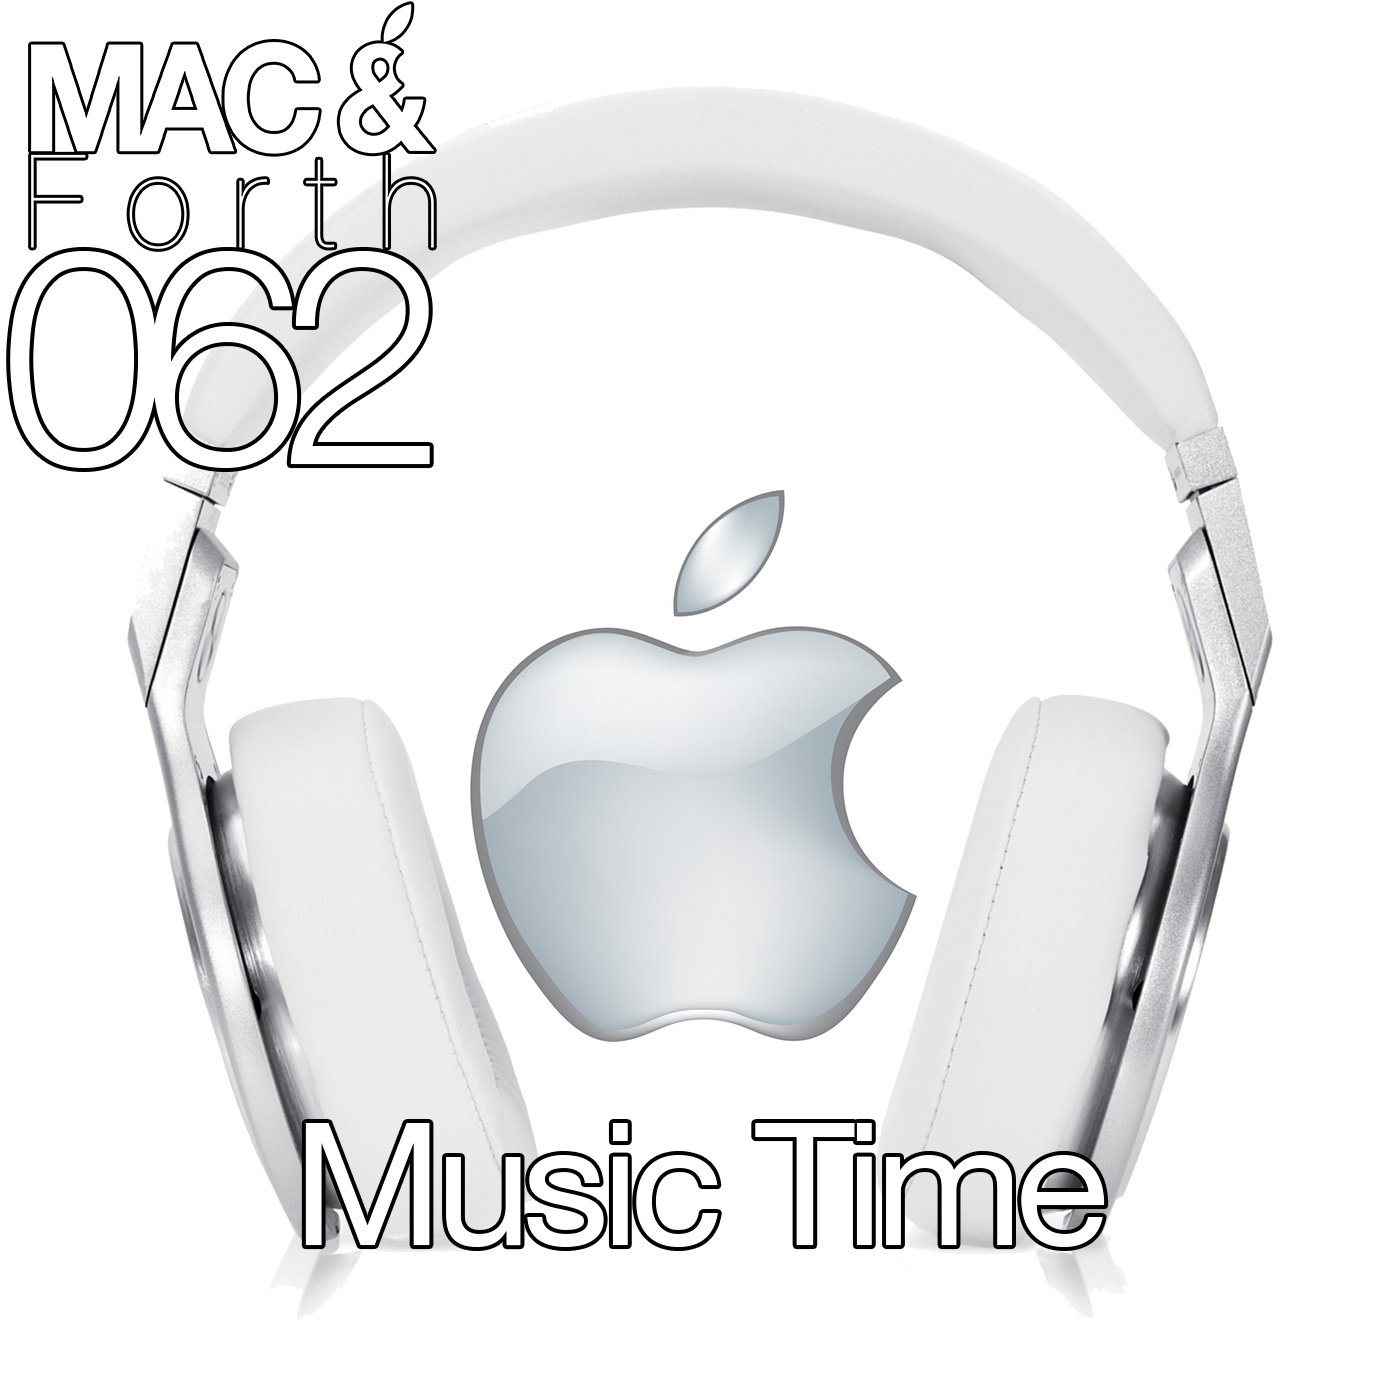 The Mac & Forth Show 062 - Music Time